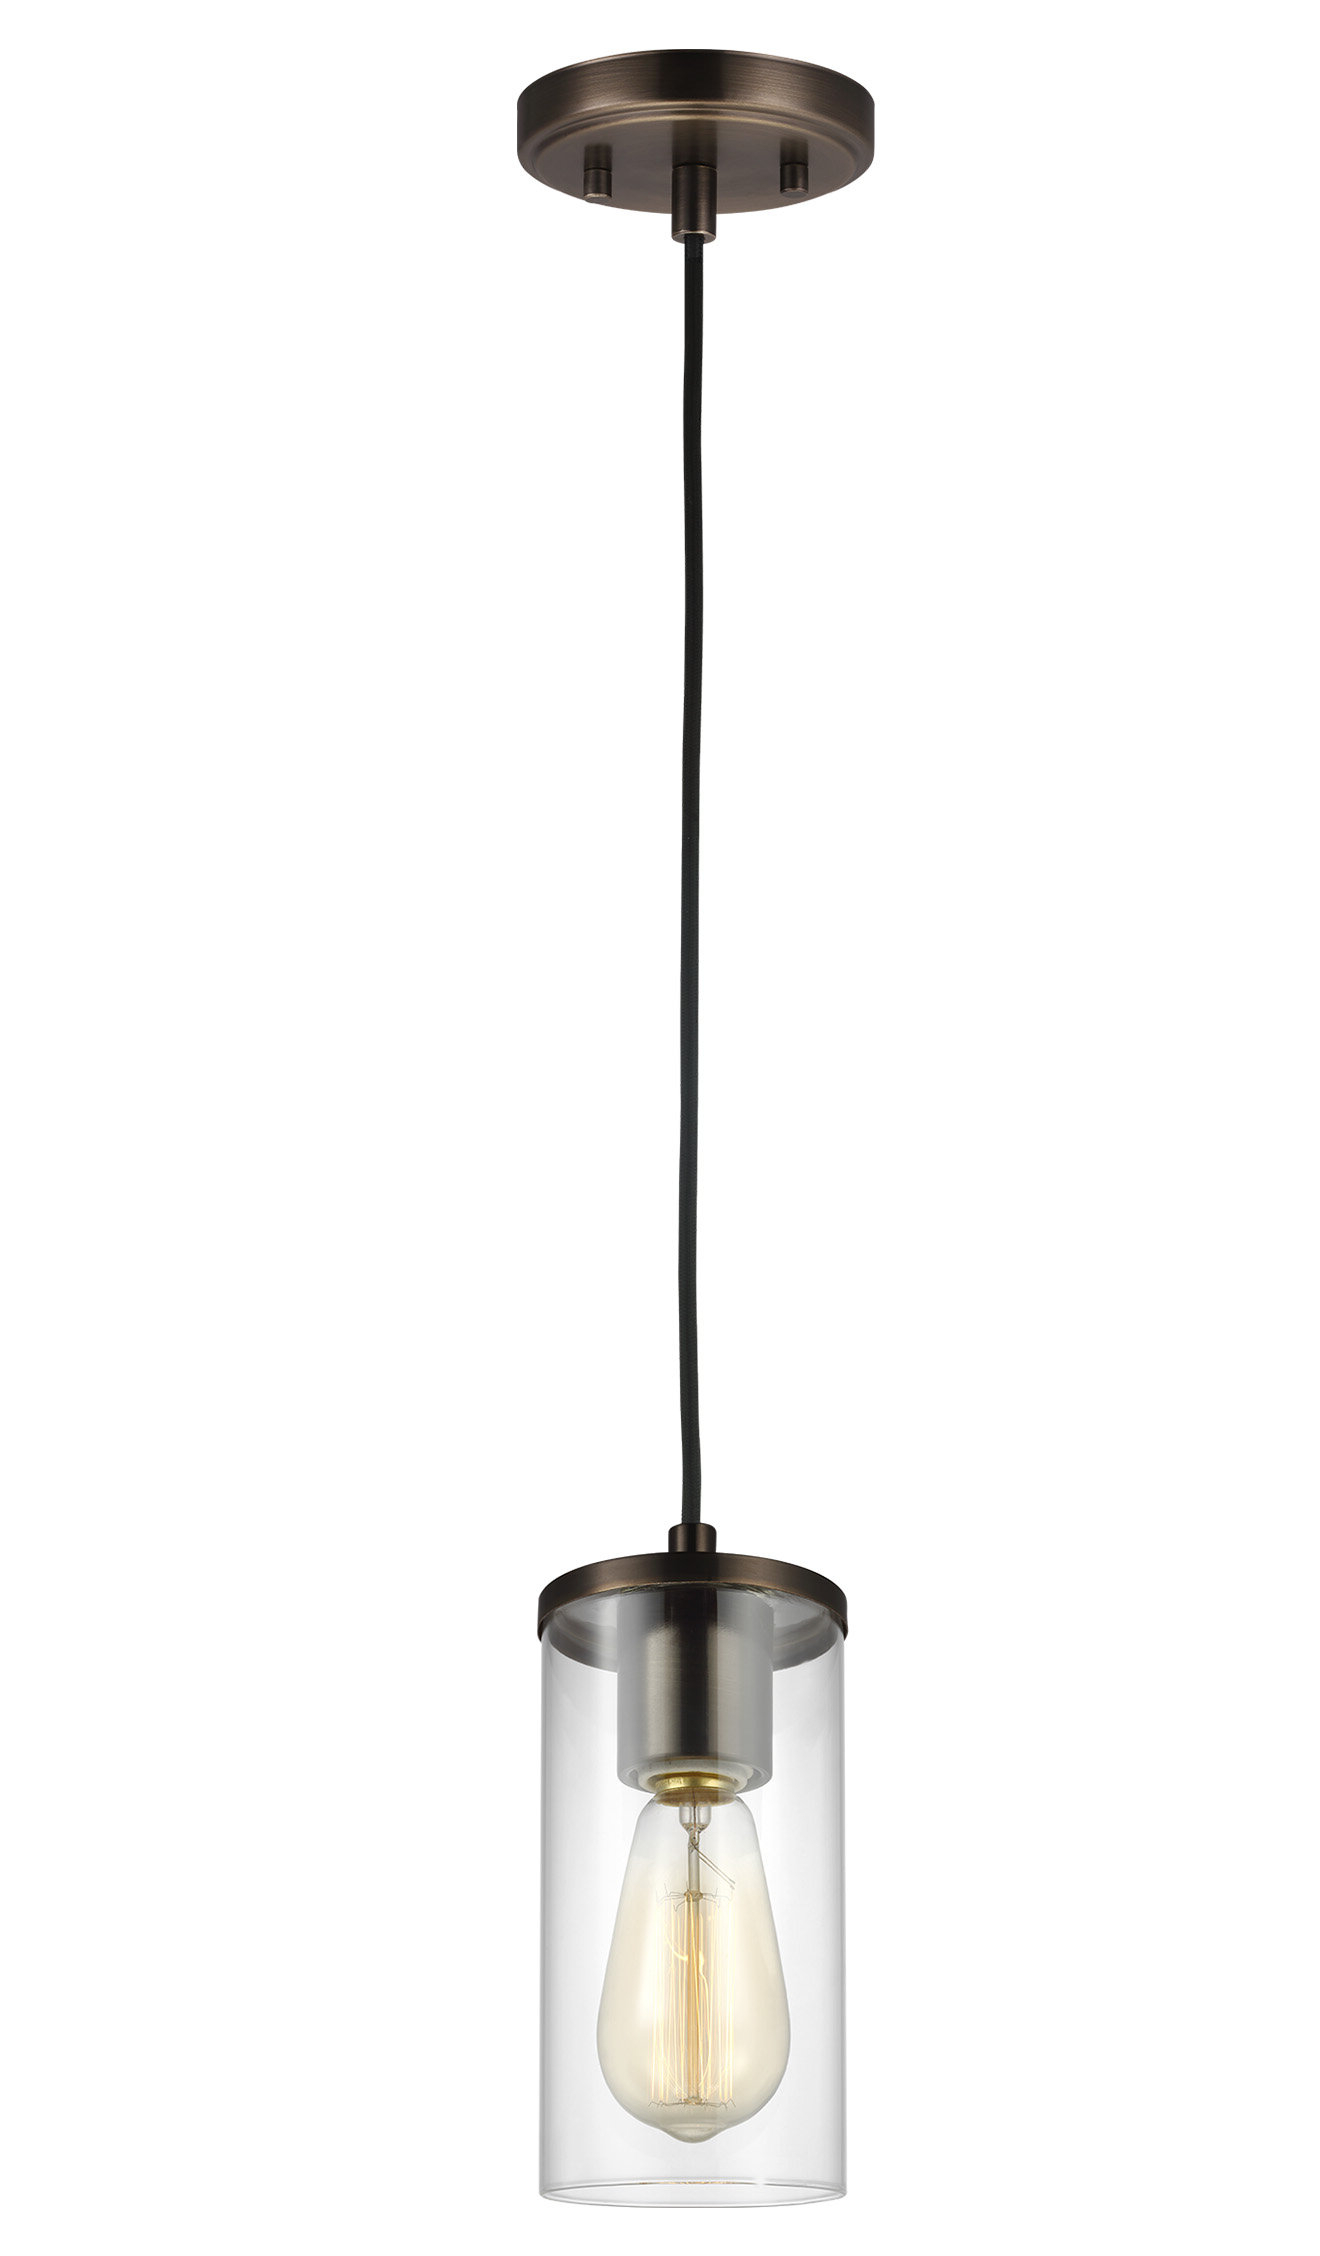 Tallapoosa 1 Light Single Cylinder Pendant For 2019 Jayce 1 Light Cylinder Pendants (View 6 of 20)